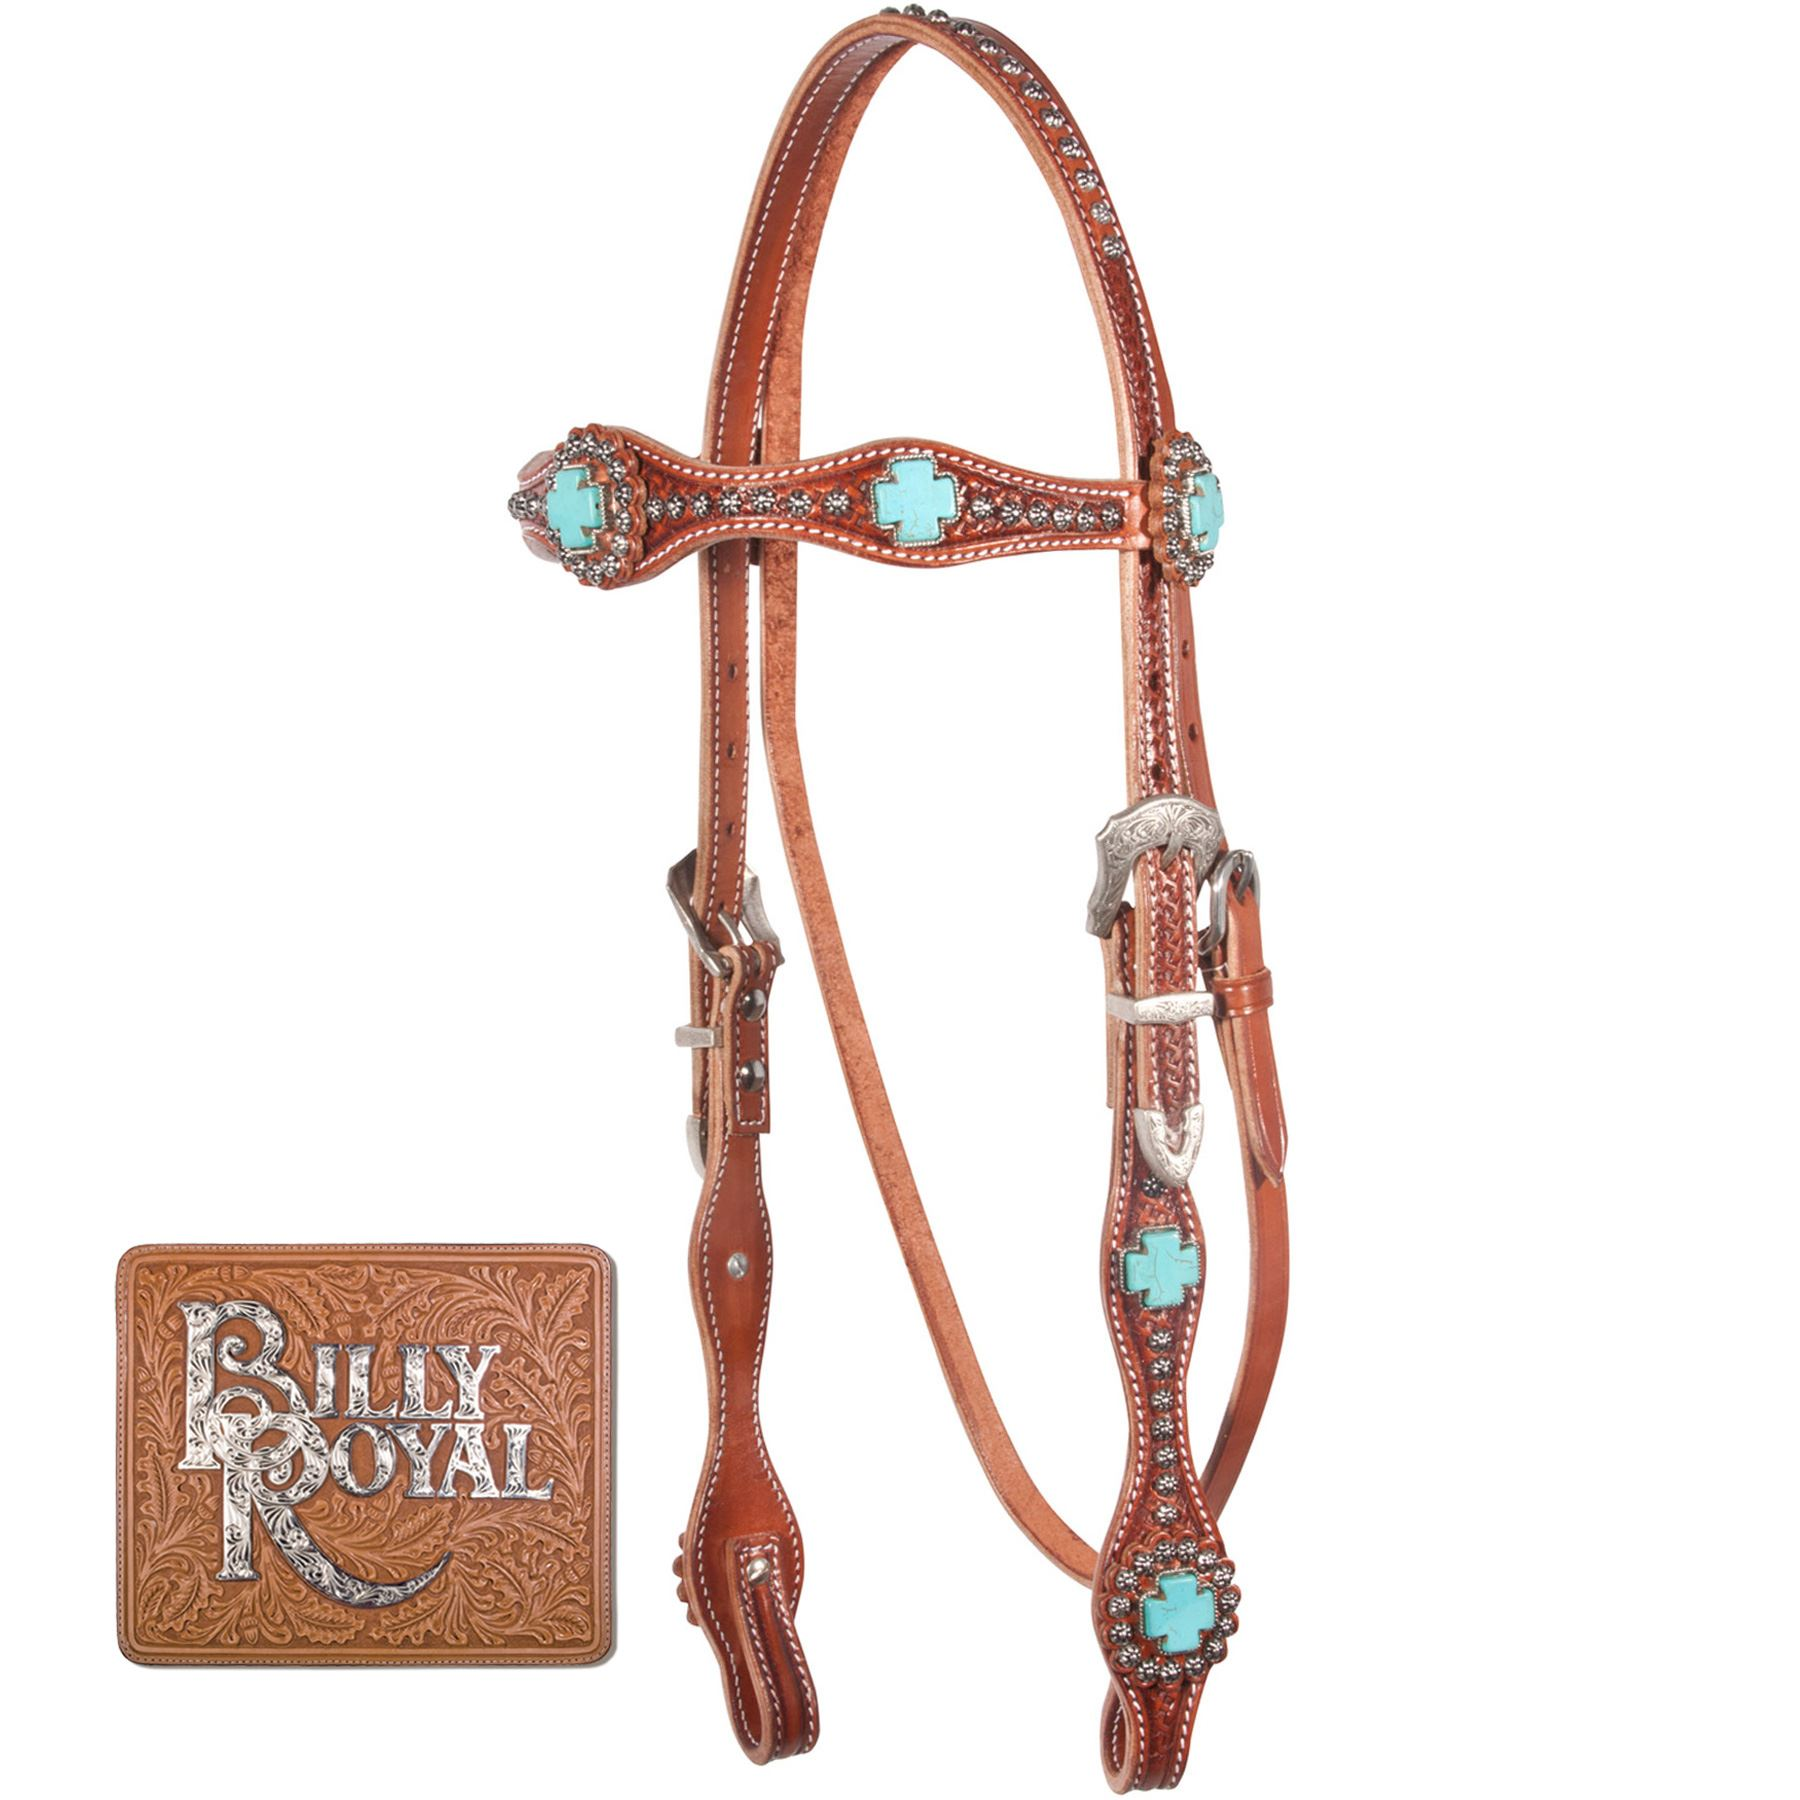 Billy Royal Bling Turquoise Rosette Browband Bridle Schneiders Saddlery